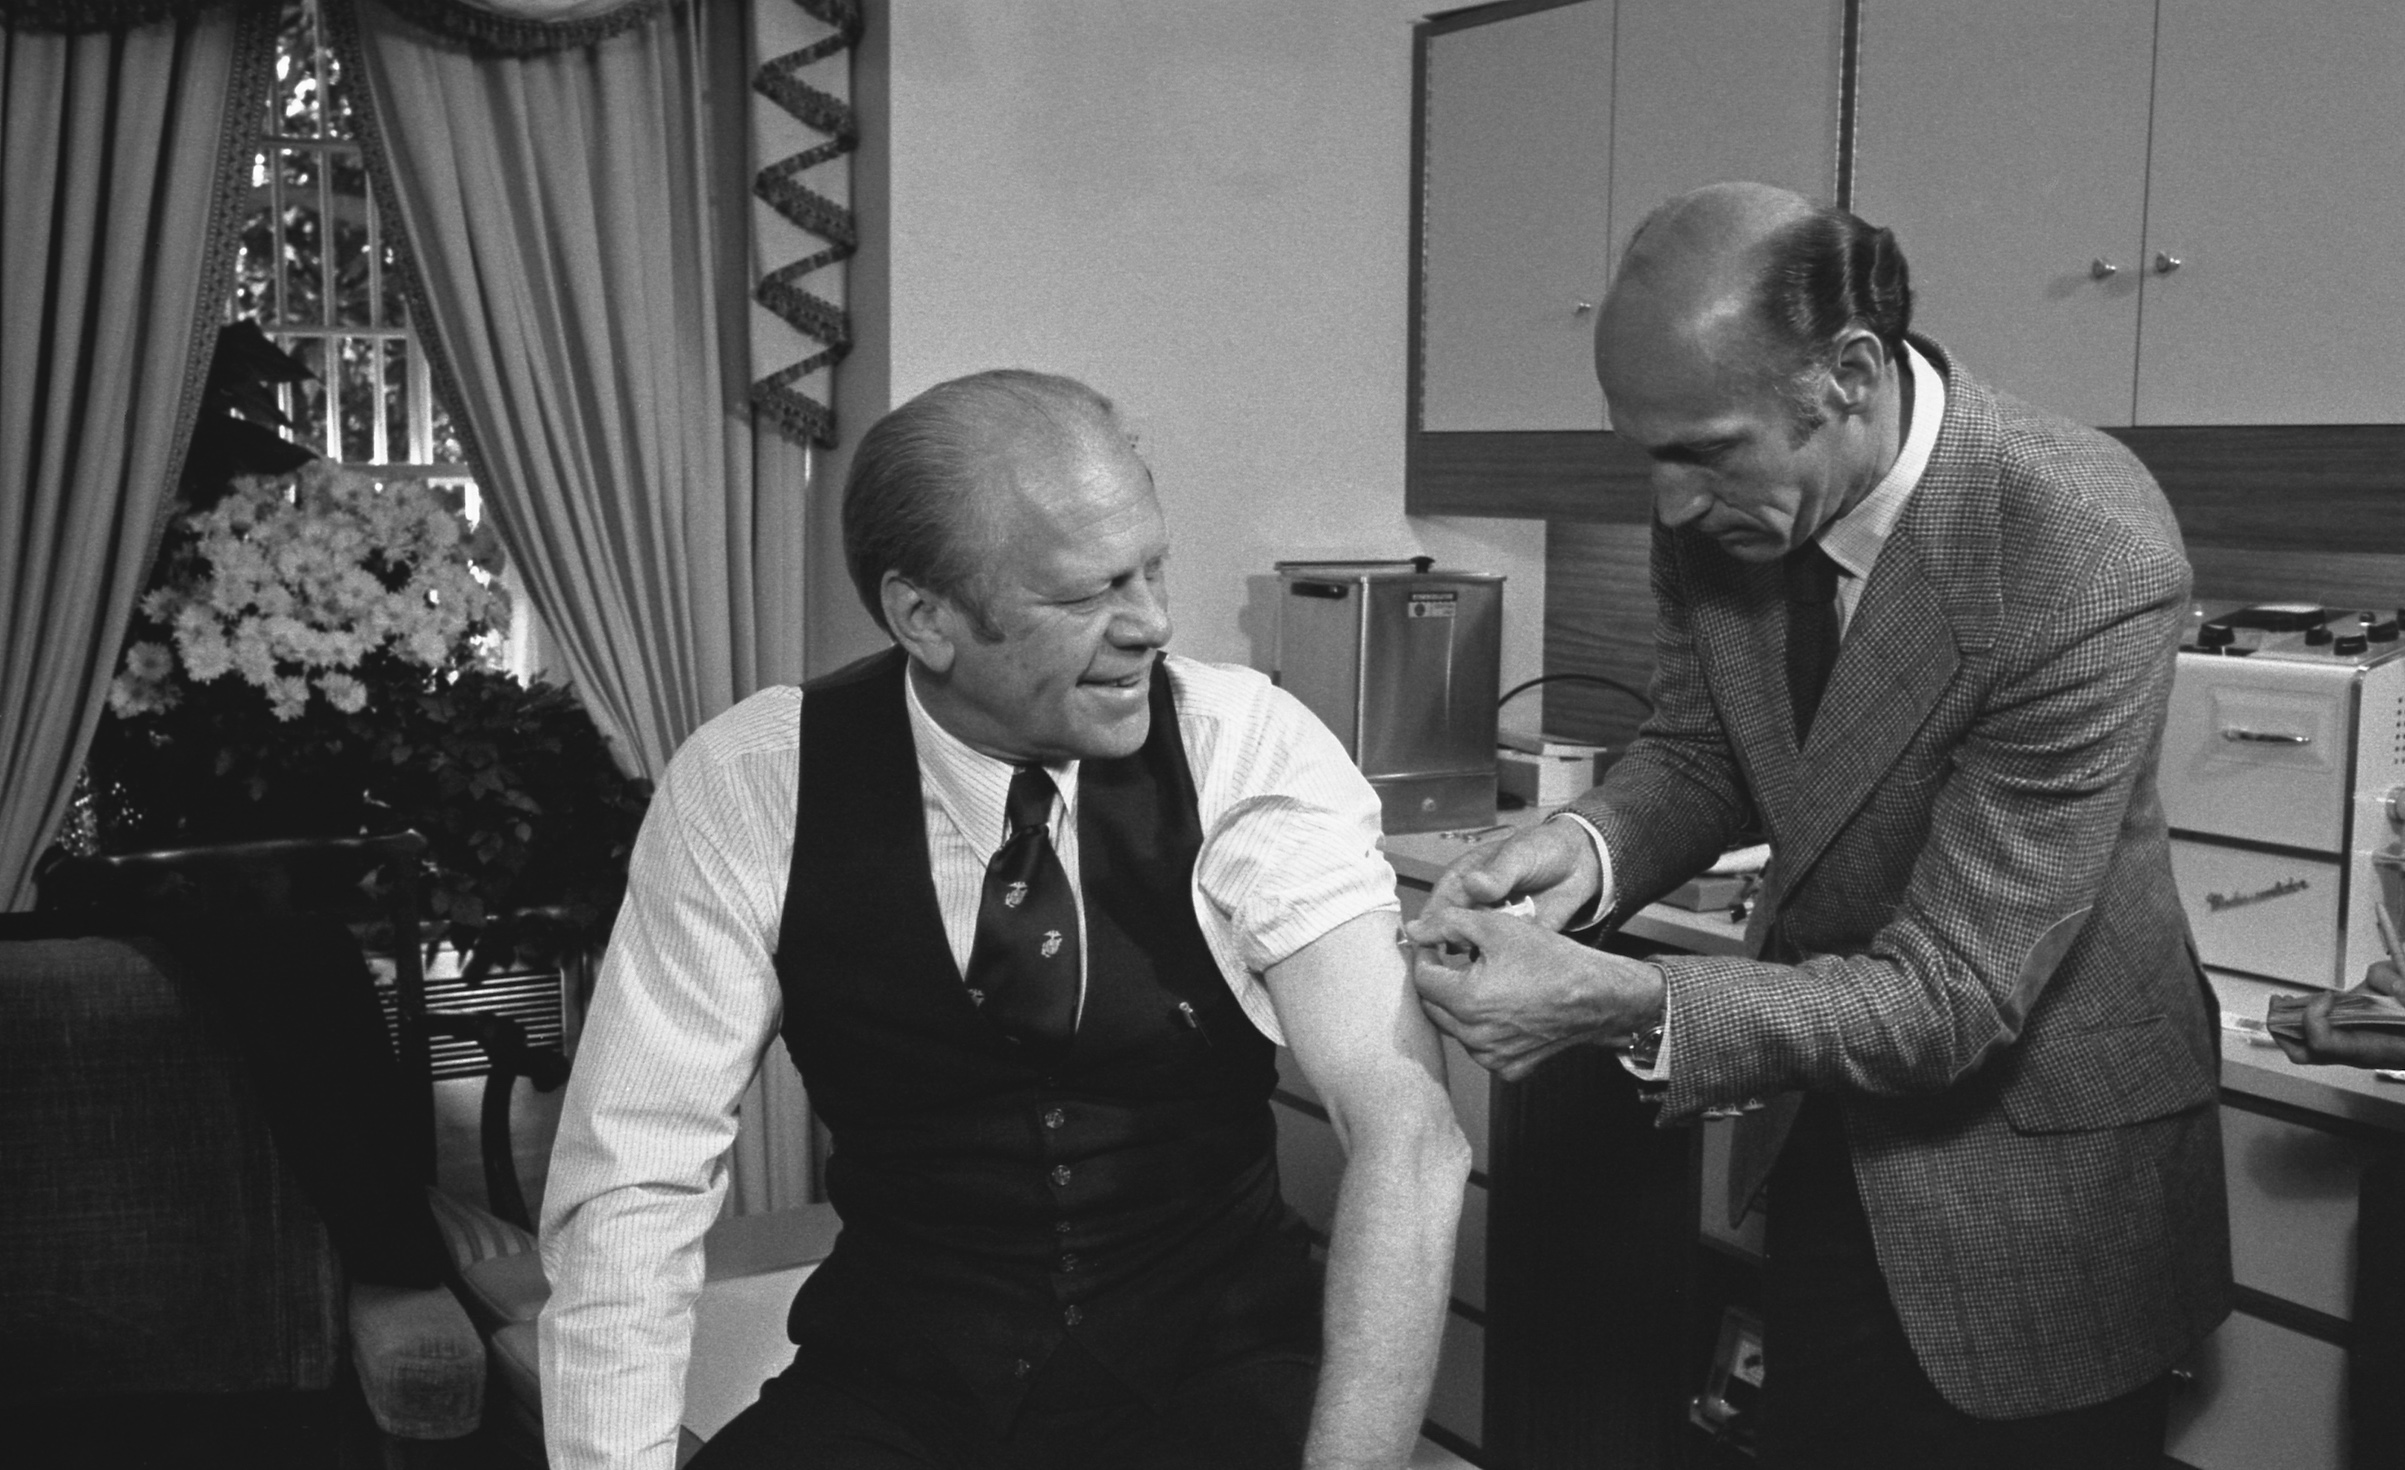 President Gerald Ford is injected with a swine flu inoculation by White House physician Dr. William Lukash, in Washington, D.C., Oct. 14, 1976.